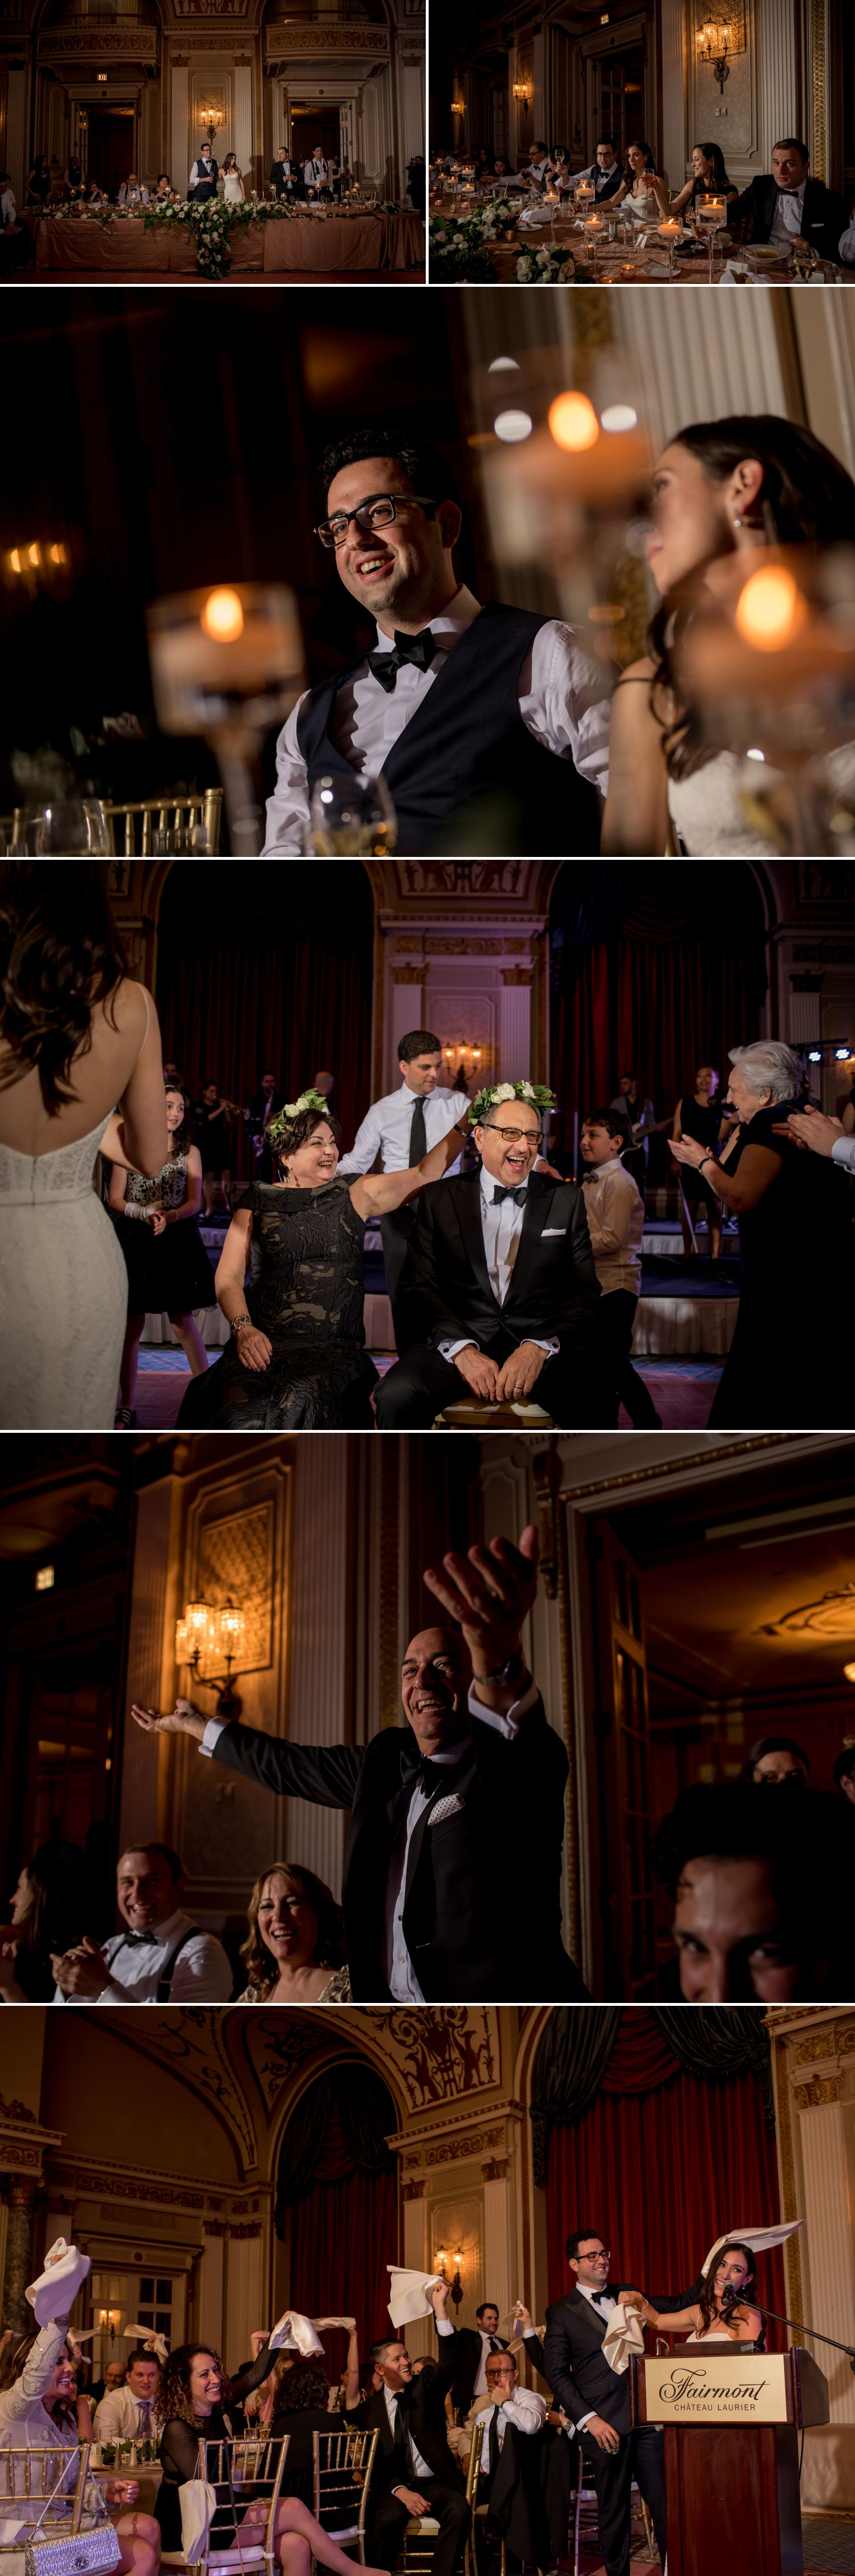 candid moments during a jewish wedding reception at the chateau laurier ballroom in ottawa ontario